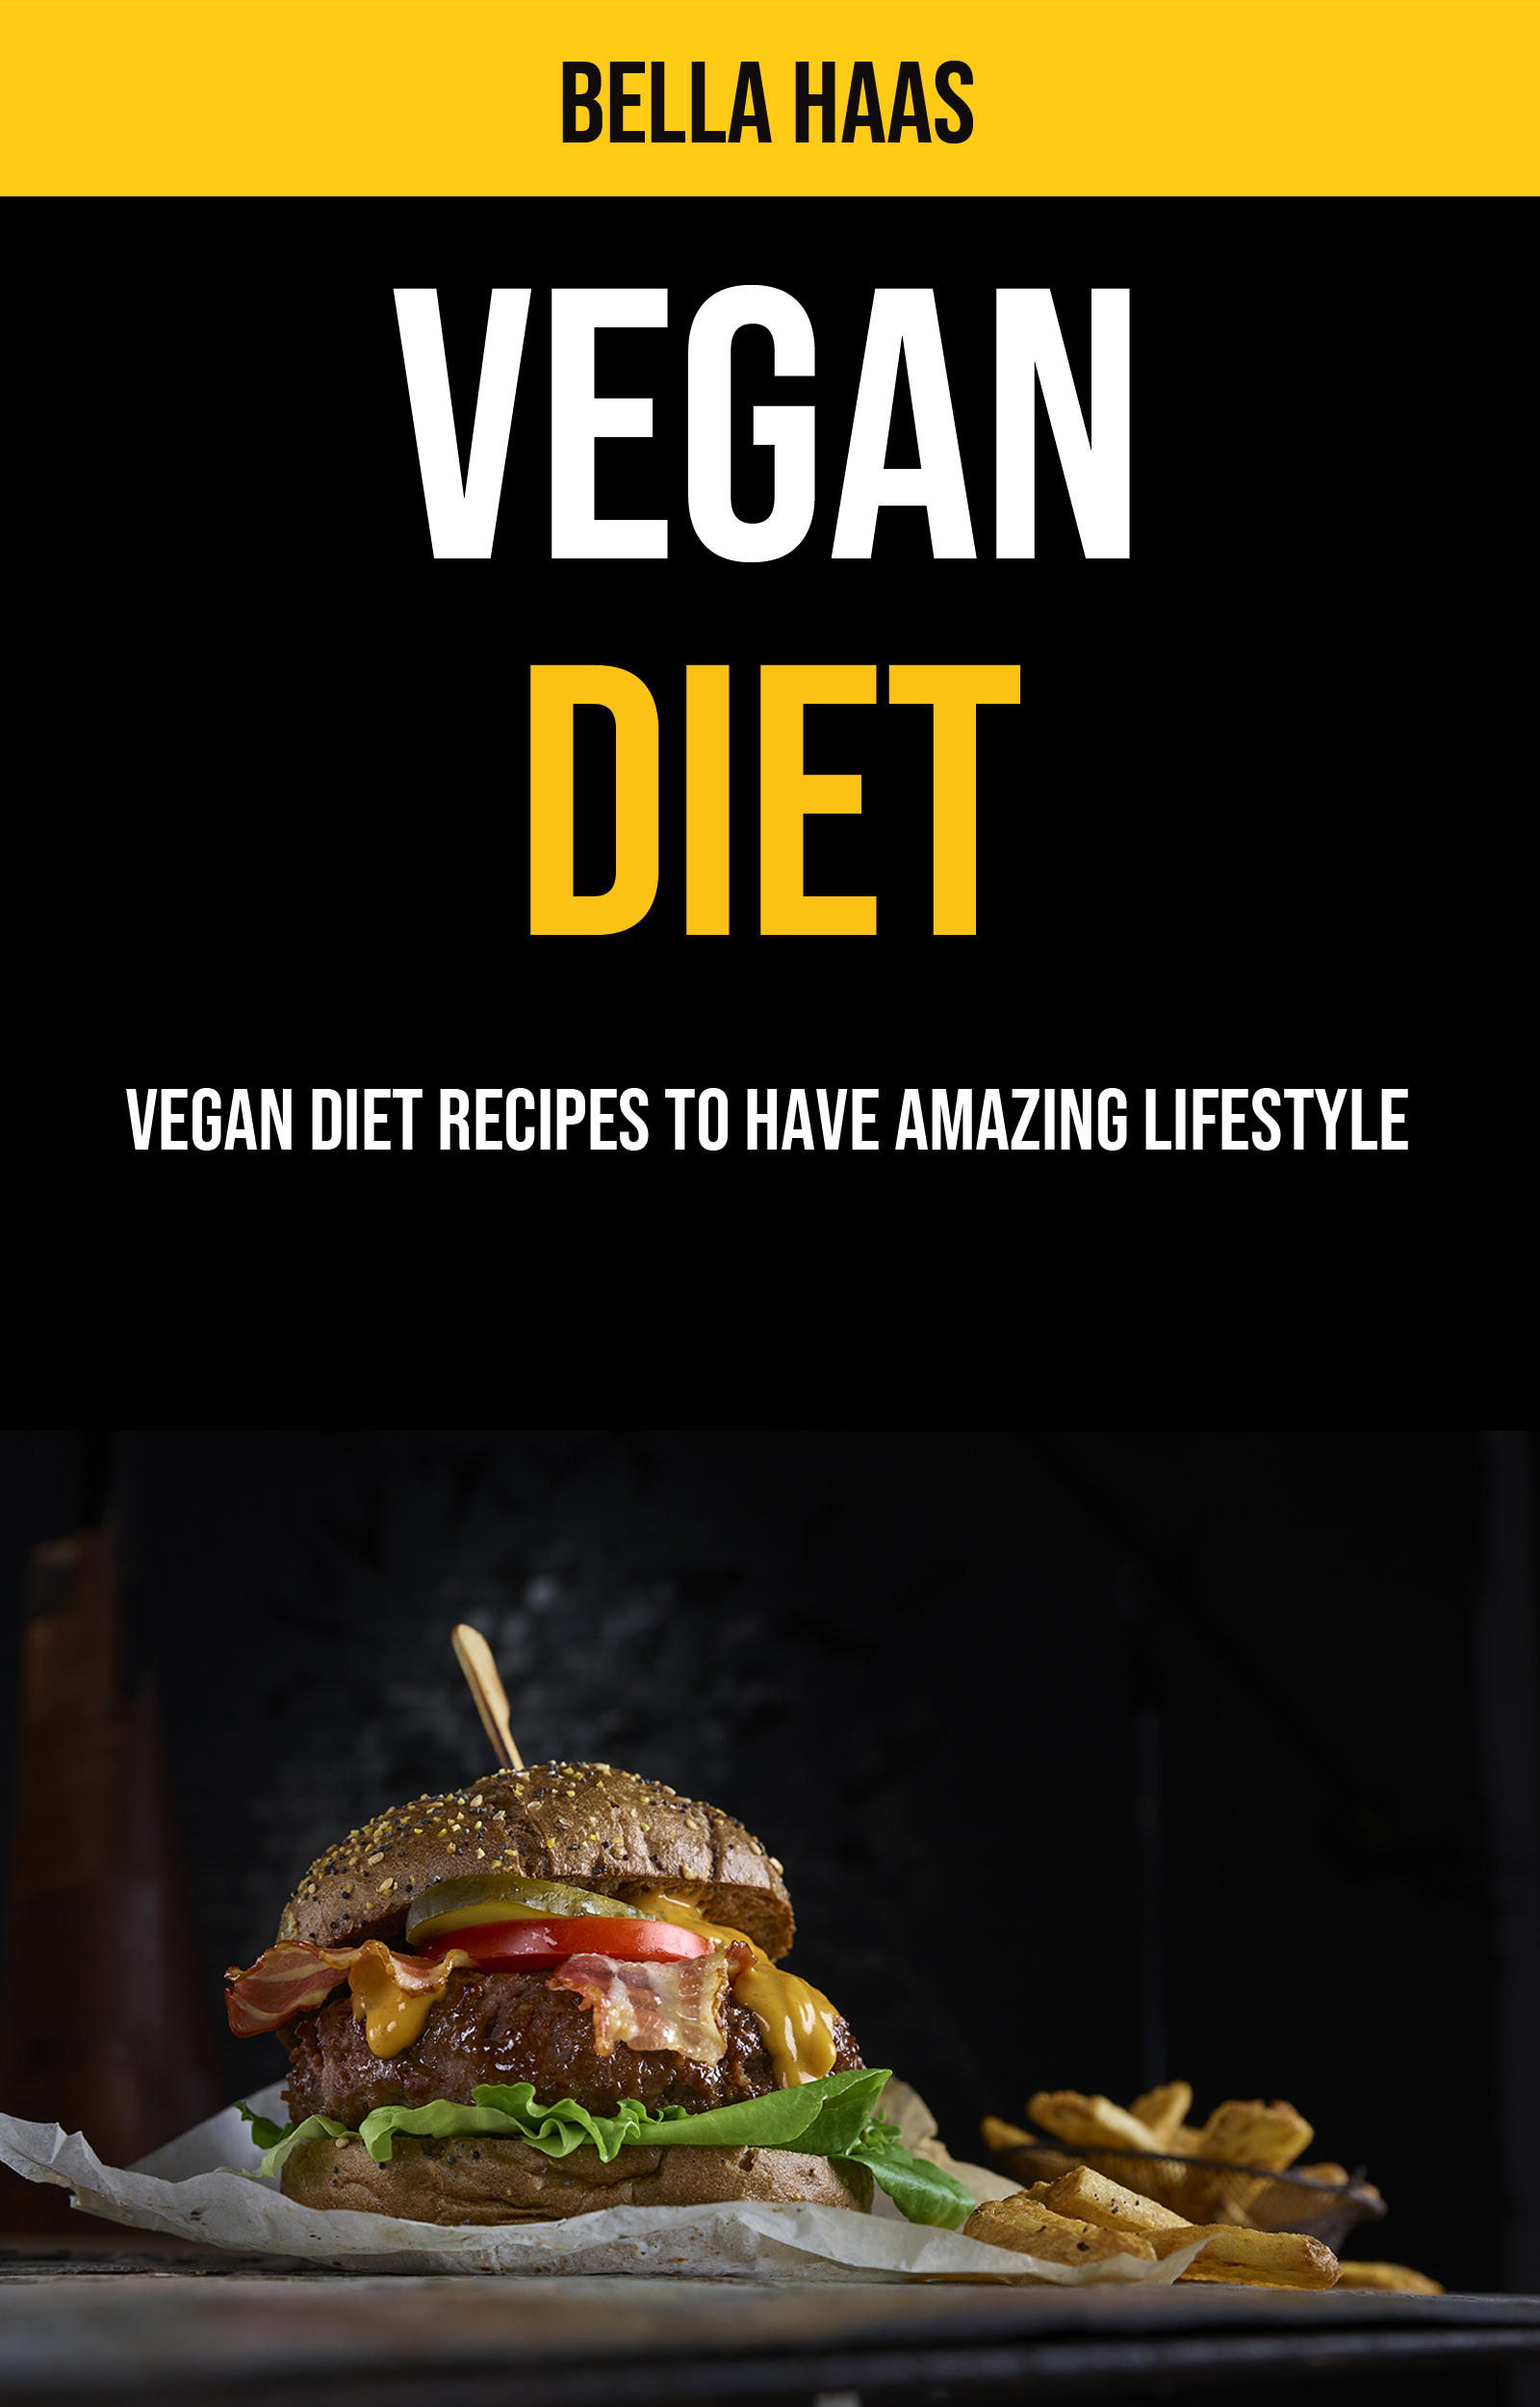 Vegan diet: vegan diet recipes to have amazing lifestyle